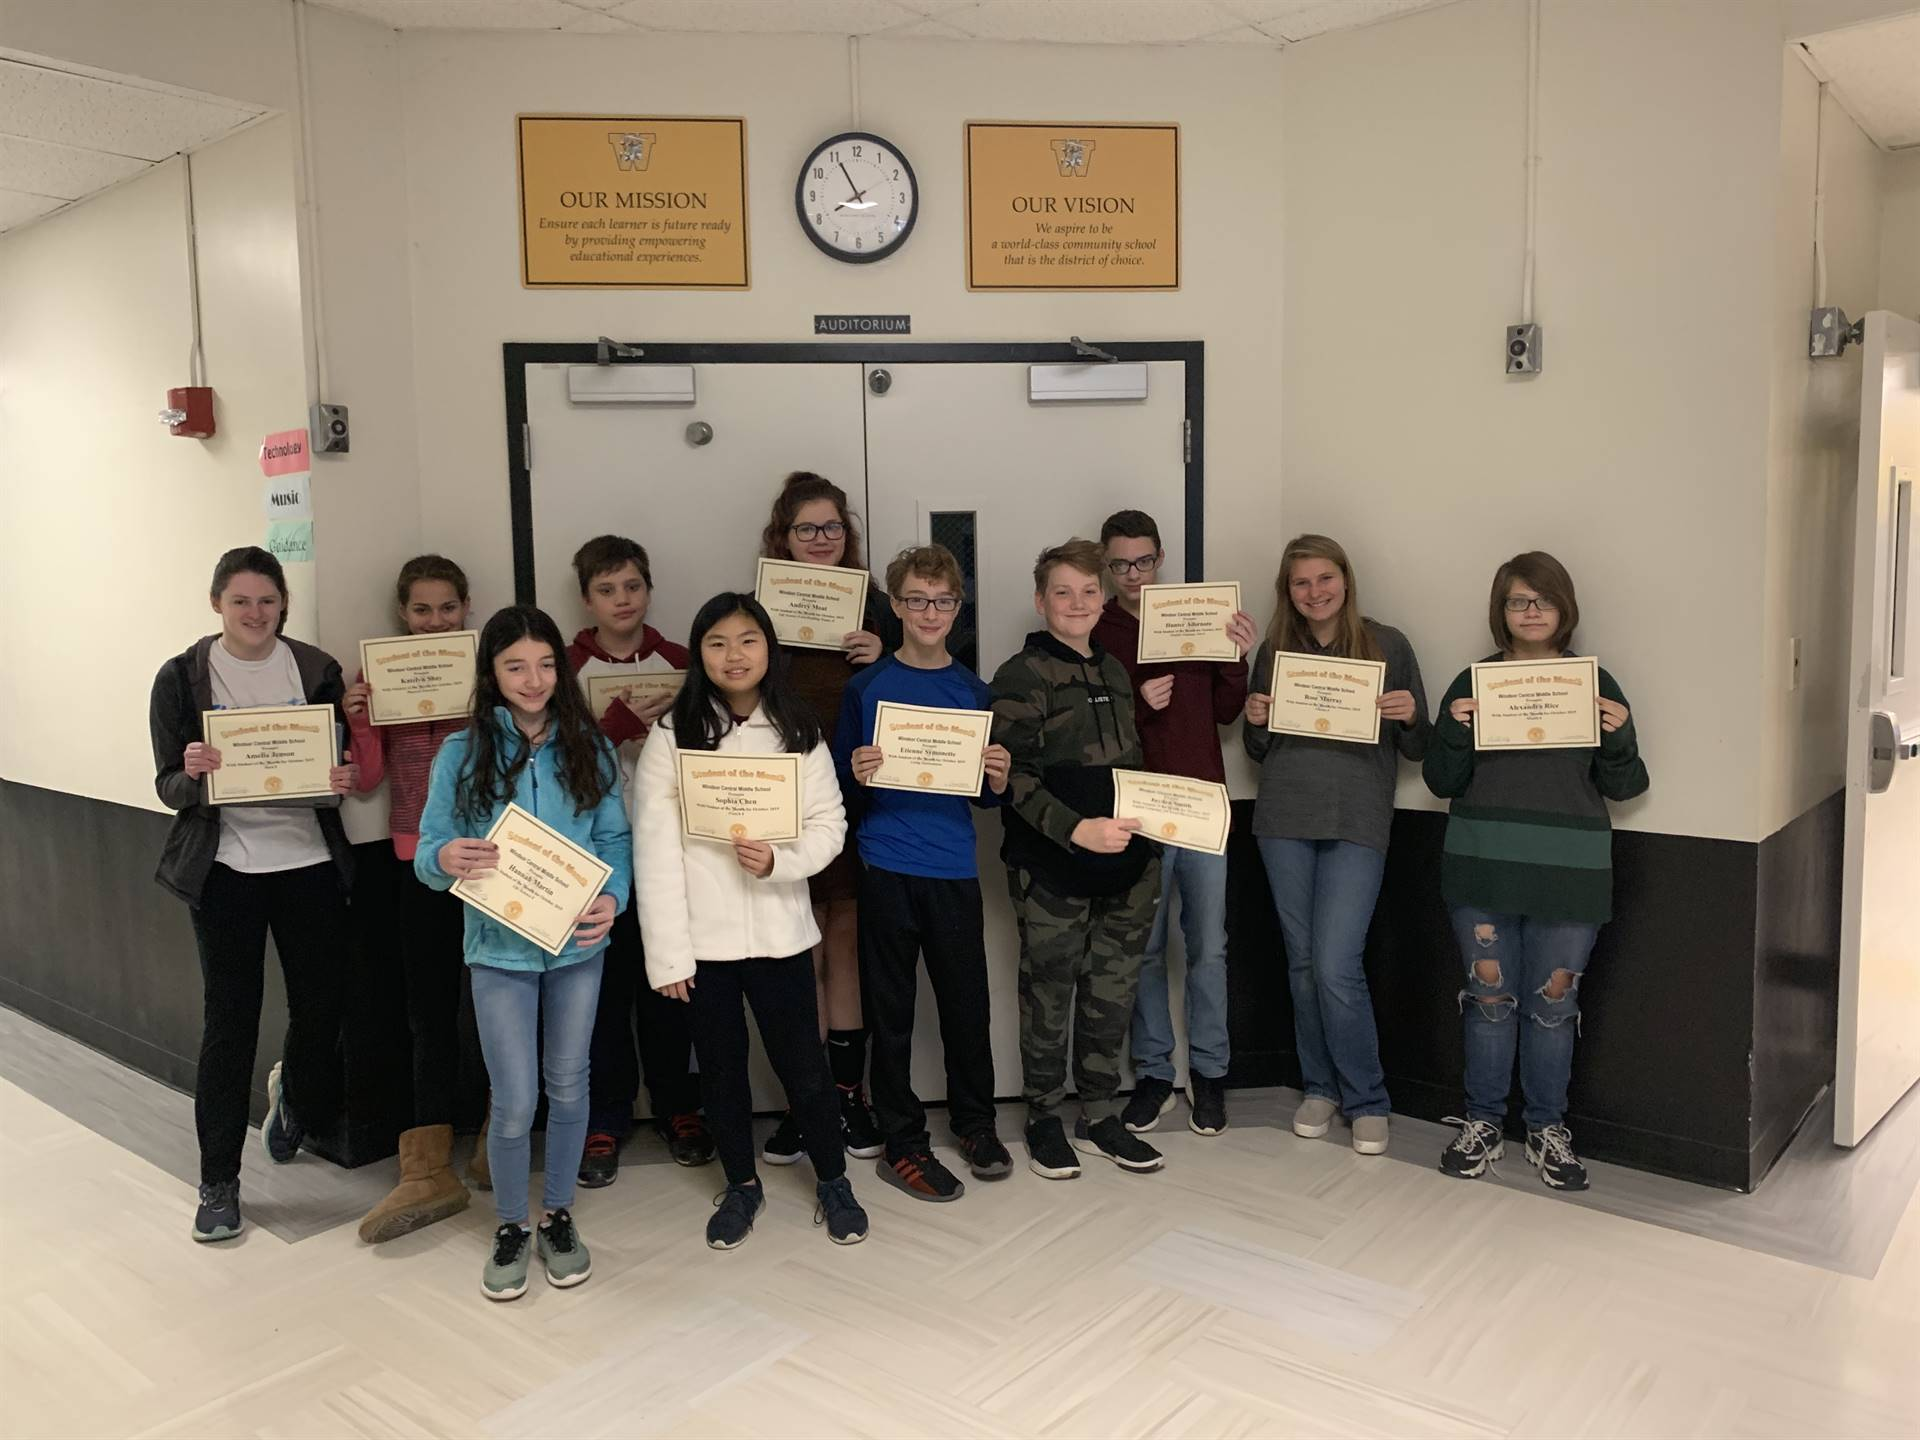 11 students holding certificates in a hallway